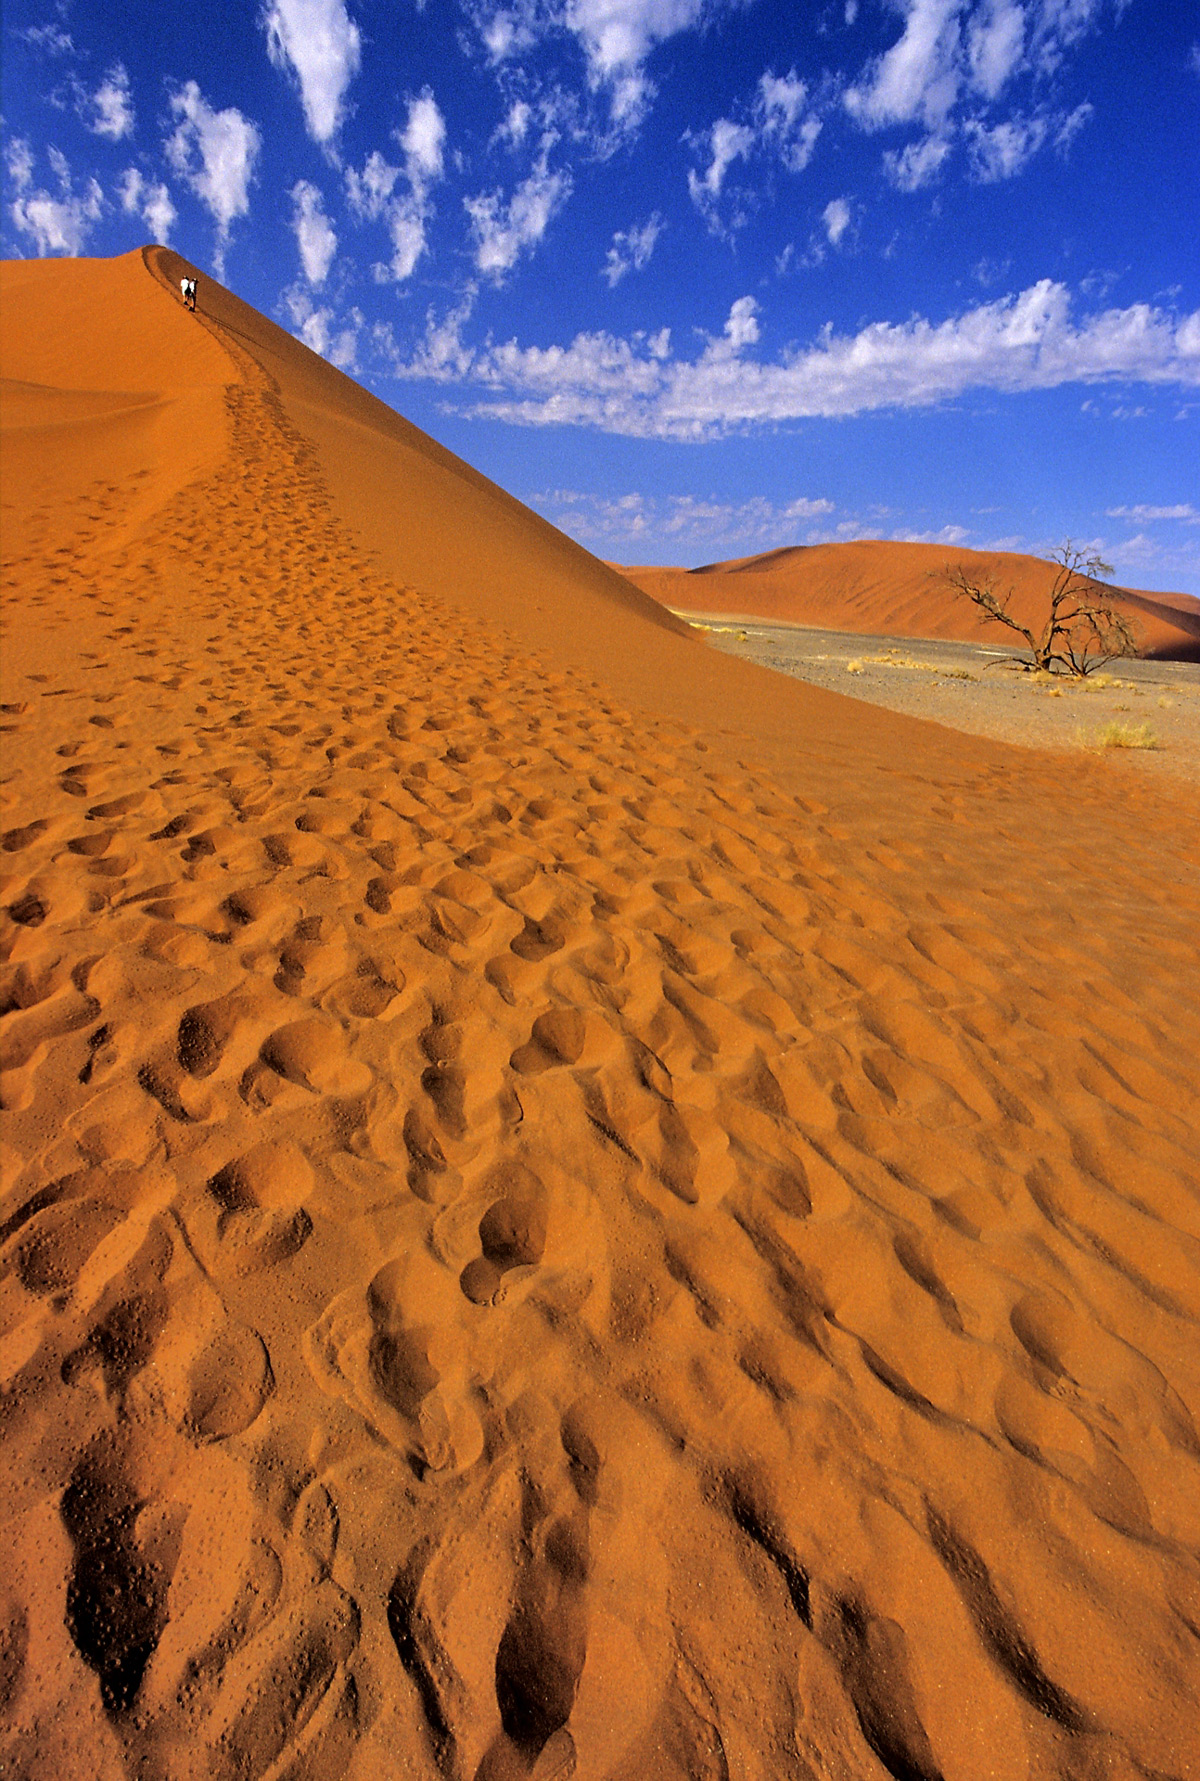 Climbing up a sand dune in Sesriem, Namib Desert, Namibia © Vittorio Ricci